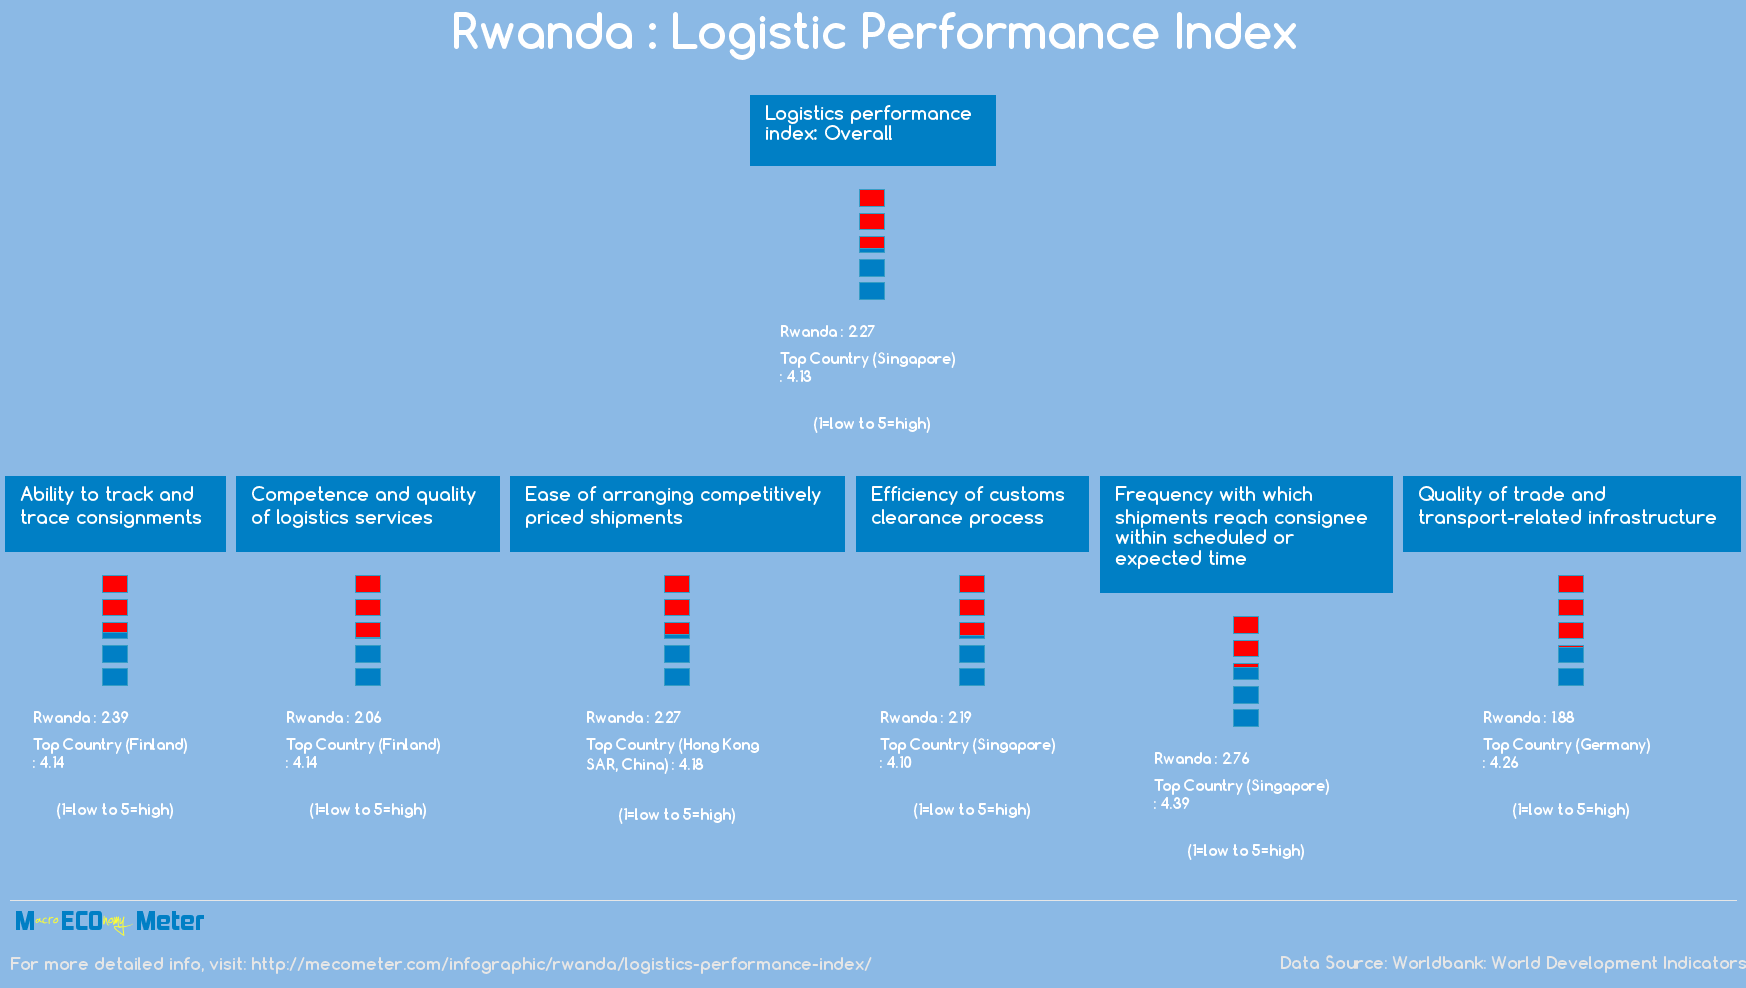 Rwanda : Logistic Performance Index